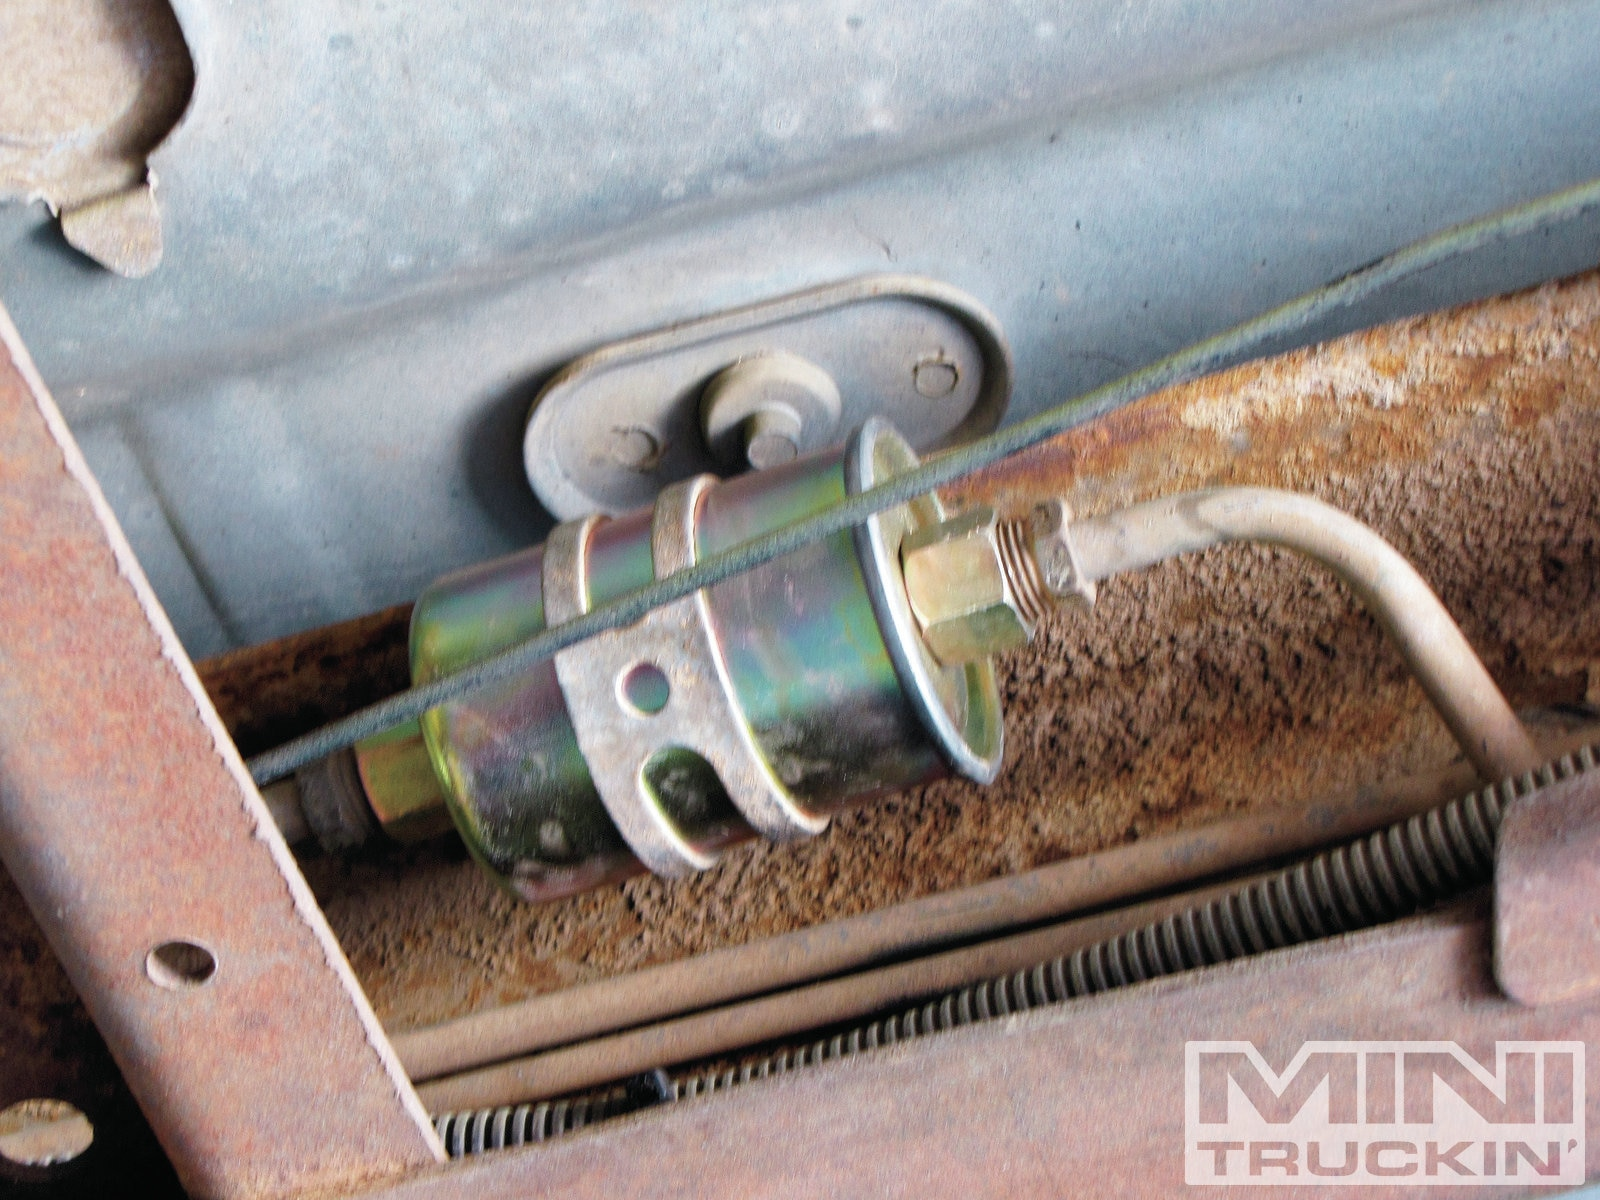 [SCHEMATICS_48EU]  LMC Fuel Tank in a 1989 Chevy S10 - Built Like A Tank Photo & Image Gallery   1991 S10 Fuel Filter Location      Truck Trend